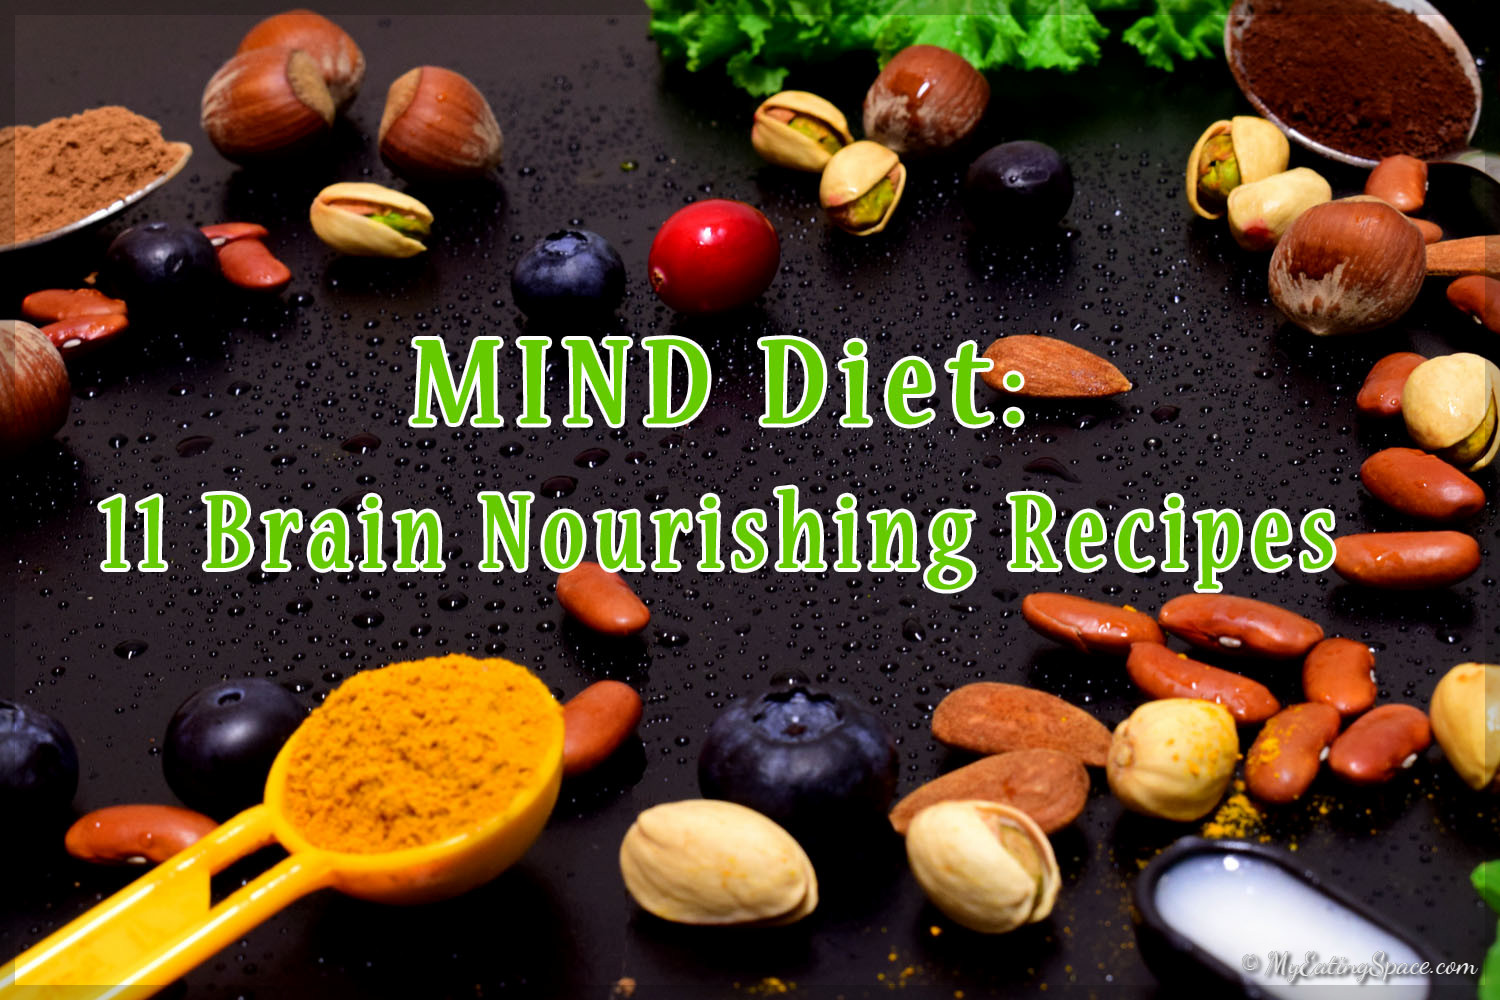 MIND Diet is considered an easy to follow diet. The studies prove to reduce the risk of Alzheimer's disease by eating nutritious food, Here are 11 recipes to include in MIND Diet and nourish and sharpen your brain.